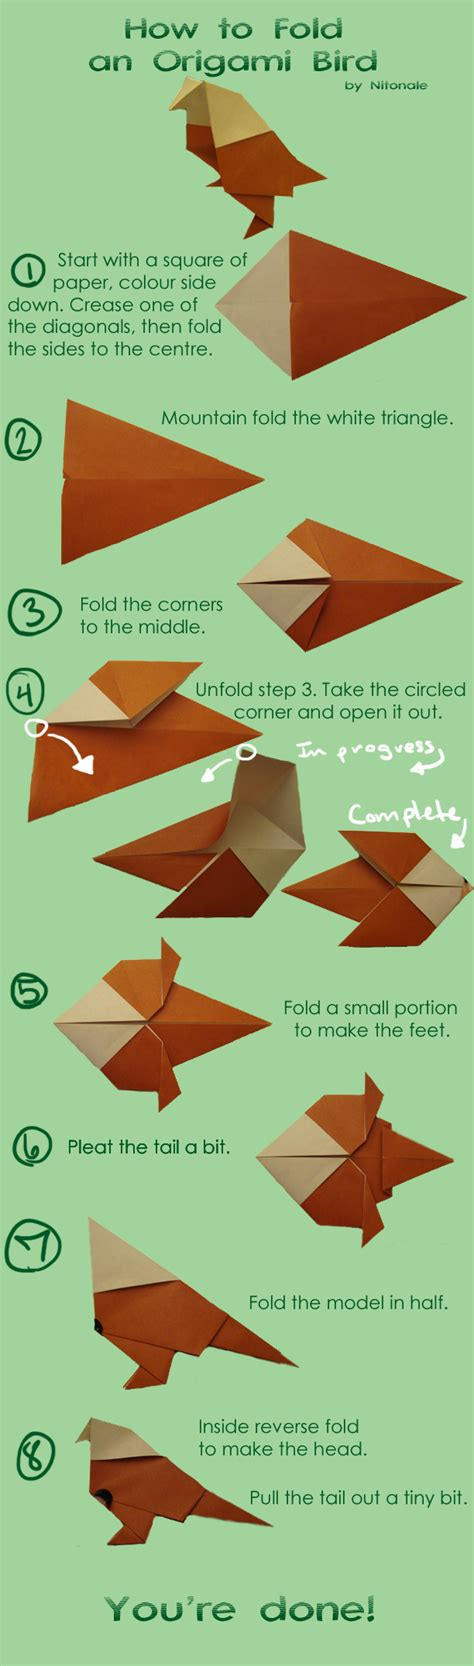 How To Make An Origami Bird For - how to make an origami bird by nitonale on deviantart